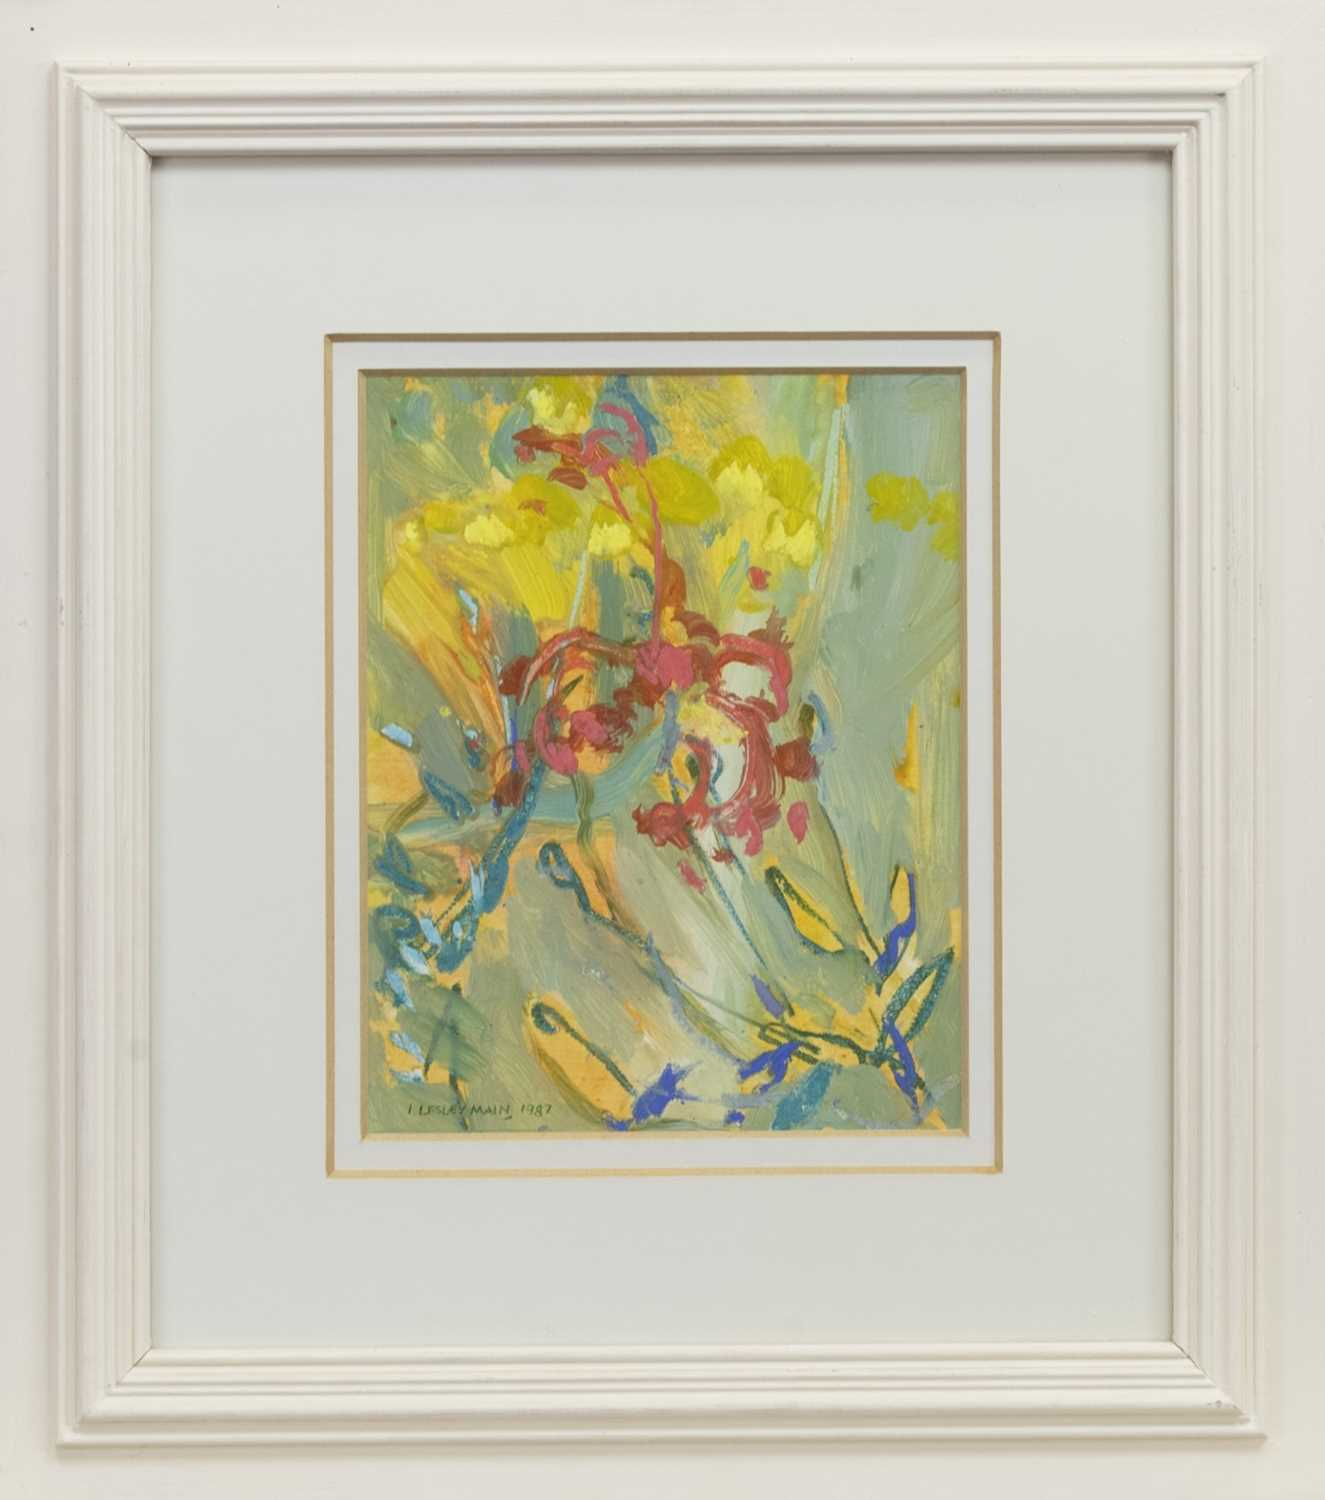 Lot 519 - YELLOW AND RED FLOWERS, SANIBEL, A MIXED MEDIA BY IRENE LESLEY MAIN